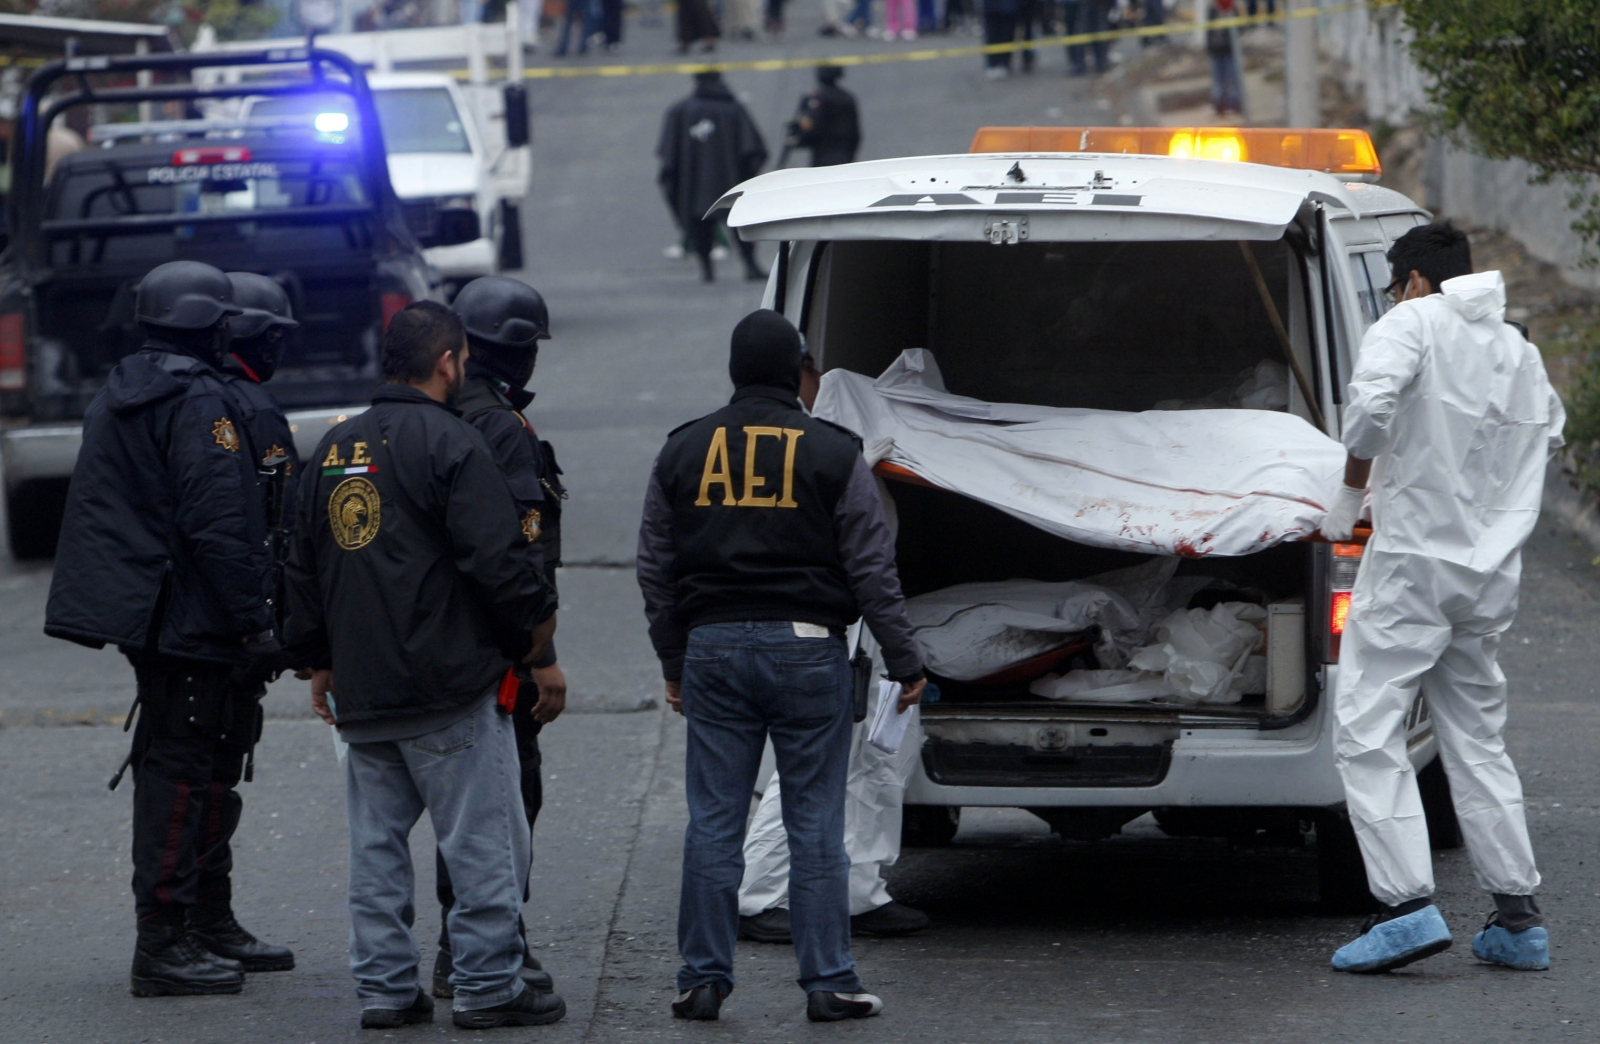 A forensics team takes away the bodies of assasination victims in Mexico. (Getty)